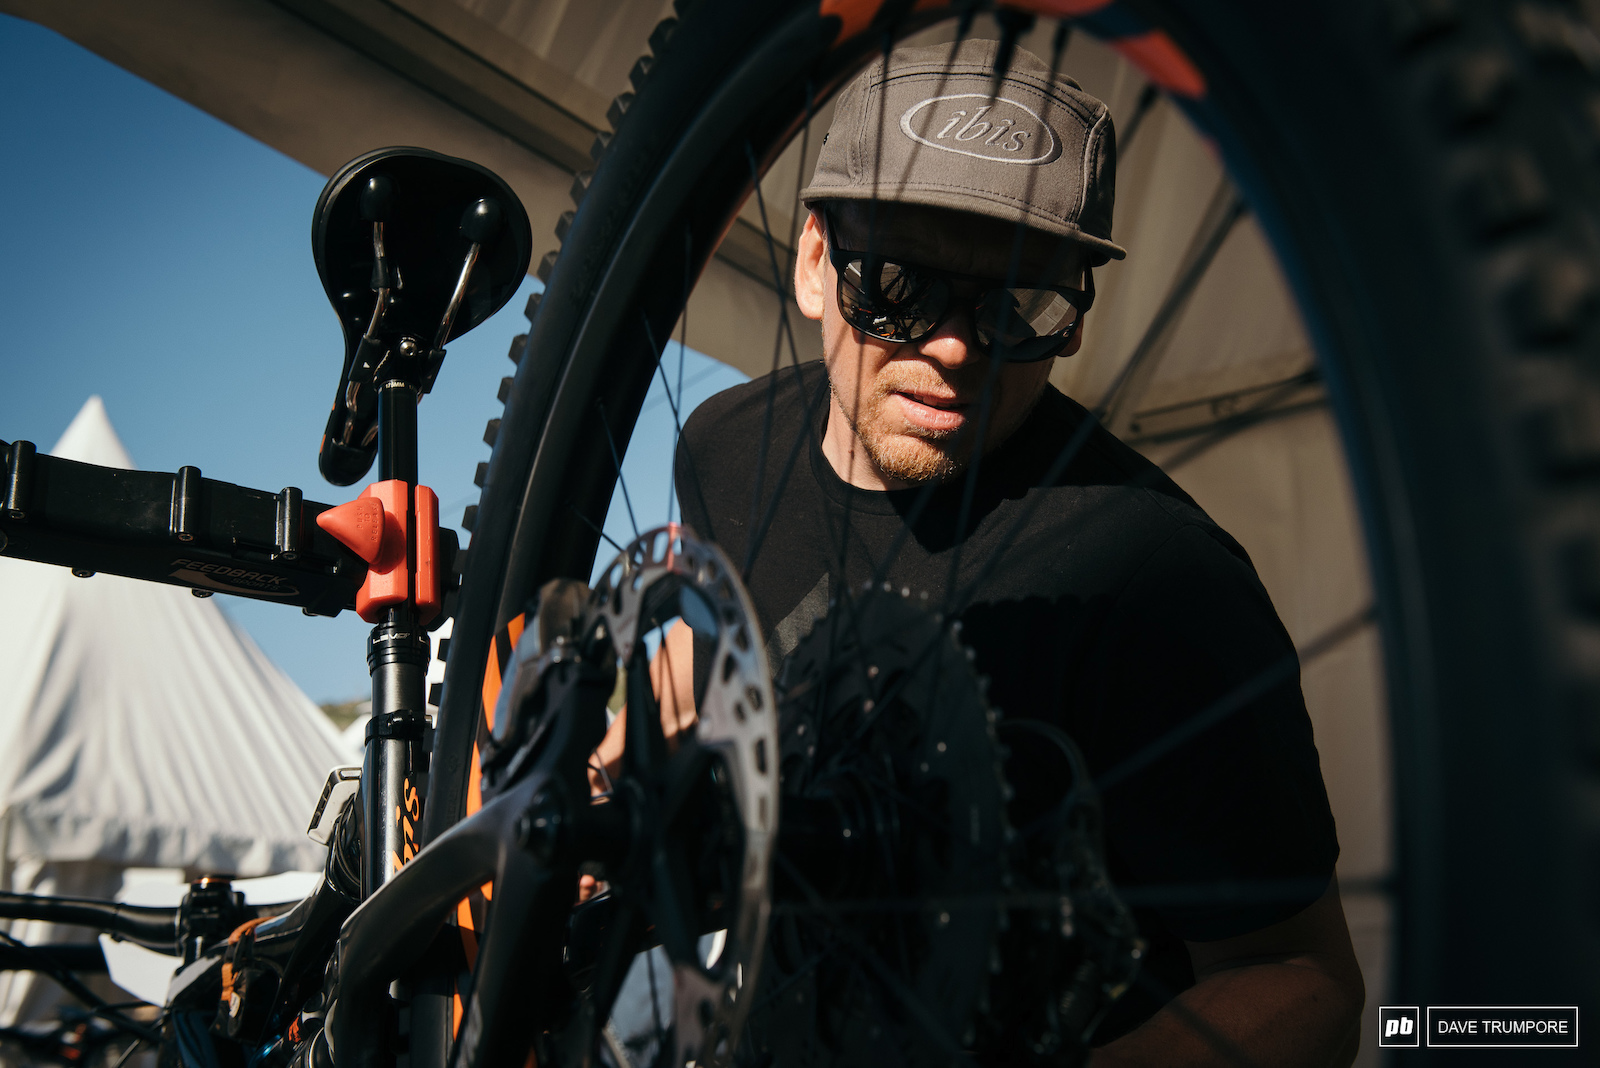 With five stages and no chance to stop at the pits at all during the day it is up to the mechanics too make sure everything is perfectly tuned before riders head off.